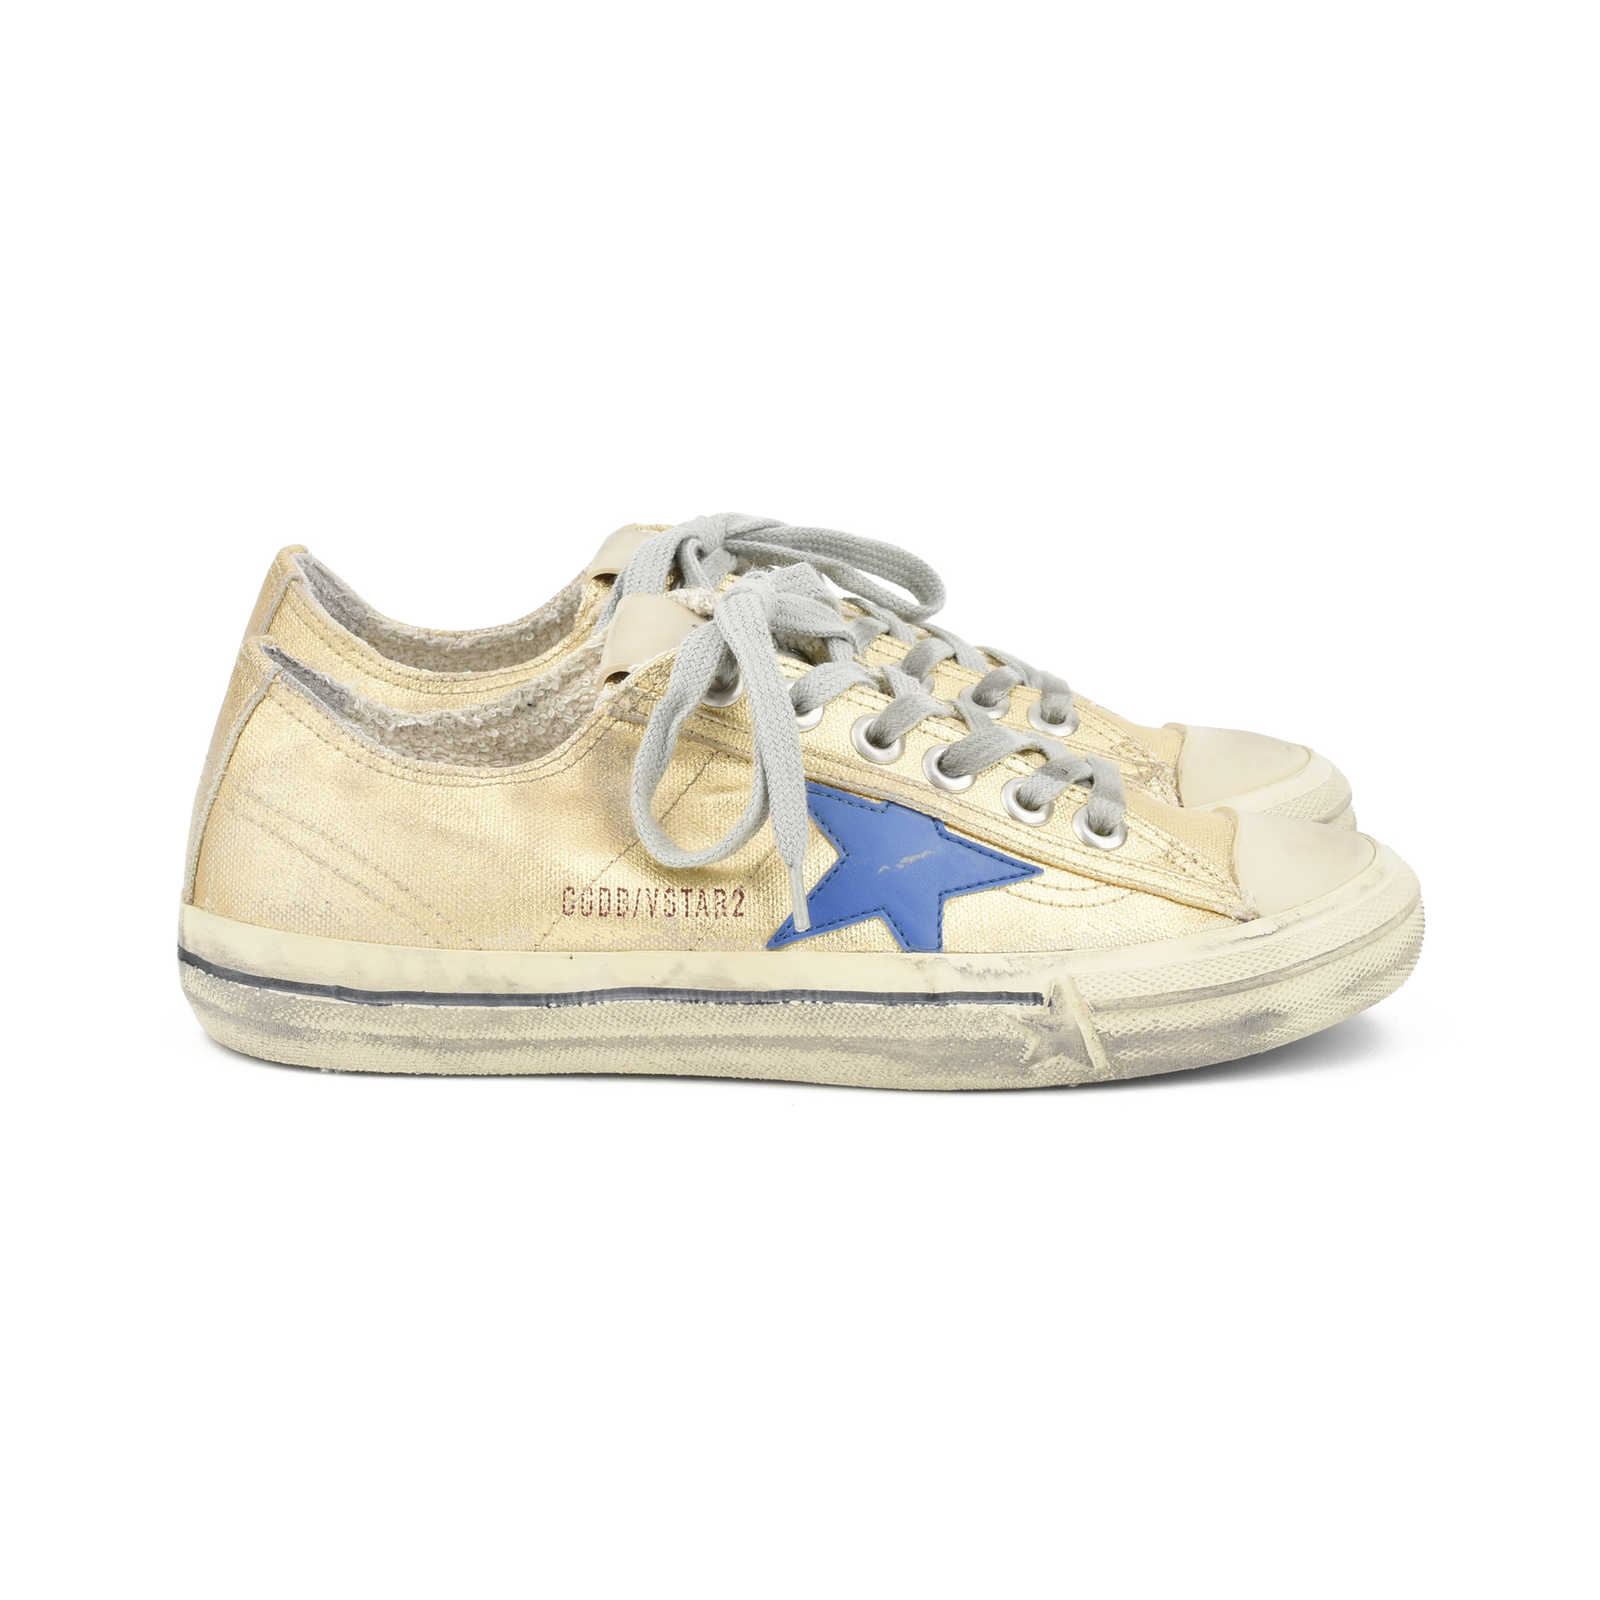 Golden Goose VStar 2 Distressed Sneakers w/ Tags cheap sale explore outlet free shipping authentic buy cheap amazing price free shipping footlocker pictures RJ0VY